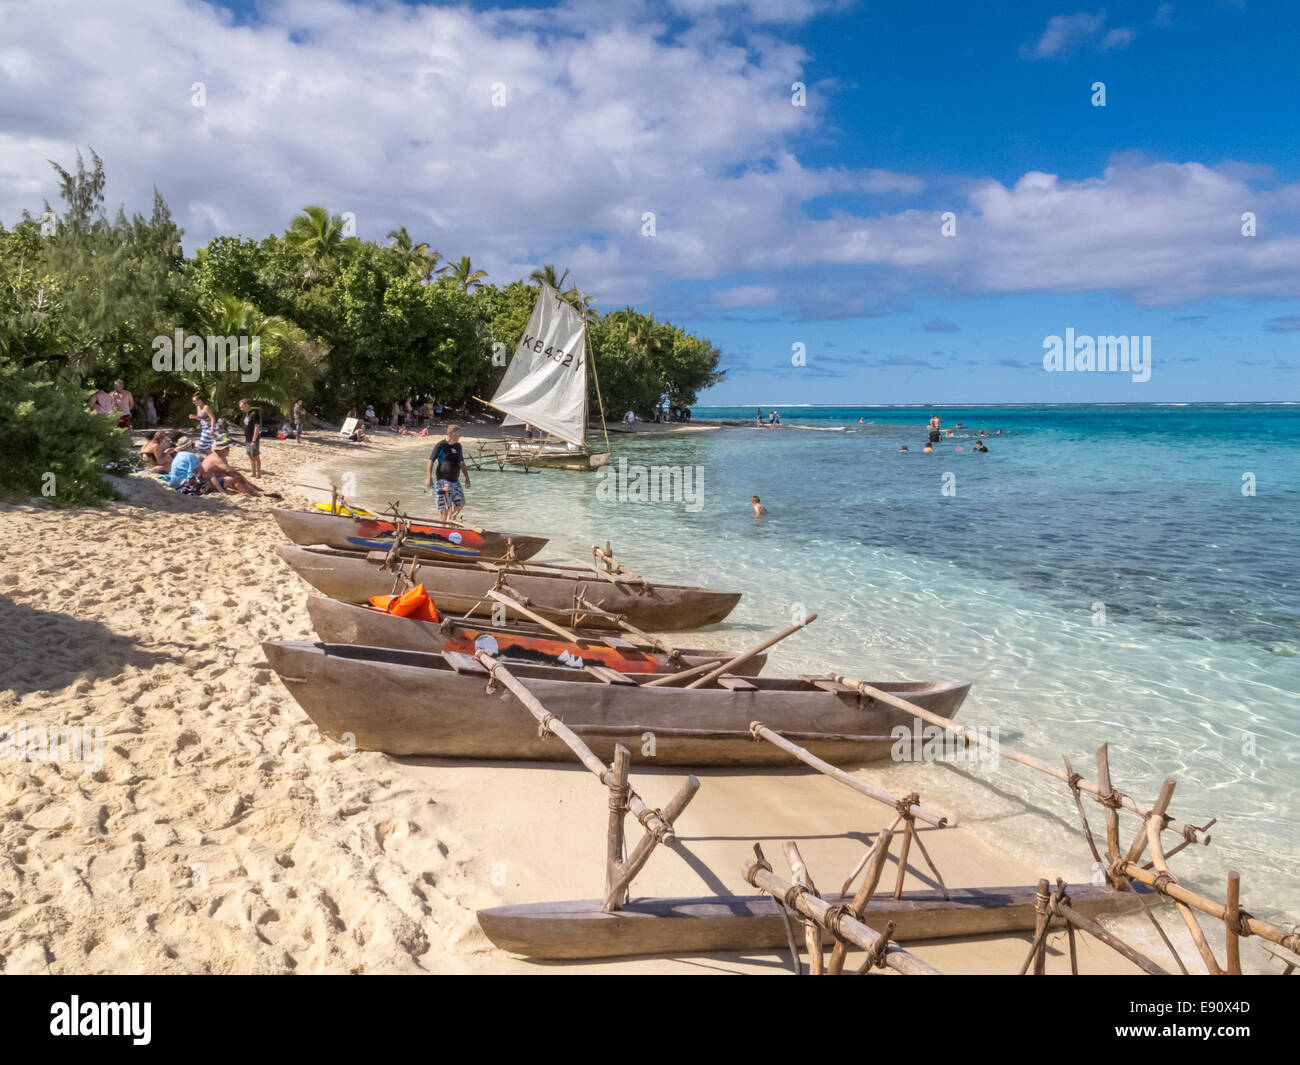 Traditional dugout outrigger canoes at Mystery Island, Vanuatu. - Stock Image